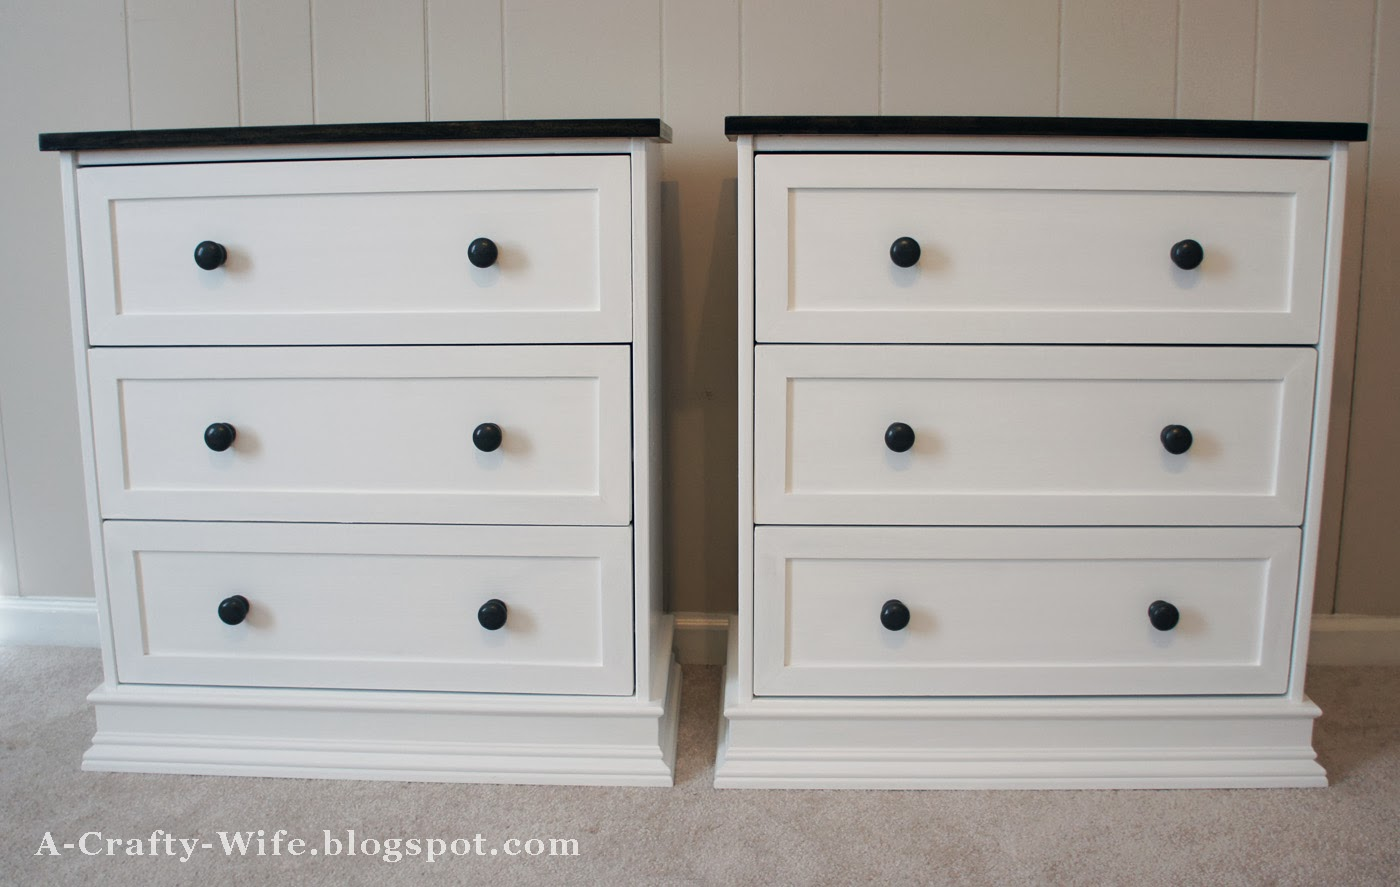 Ikea Rast hack - finished shot | A Crafty Wife